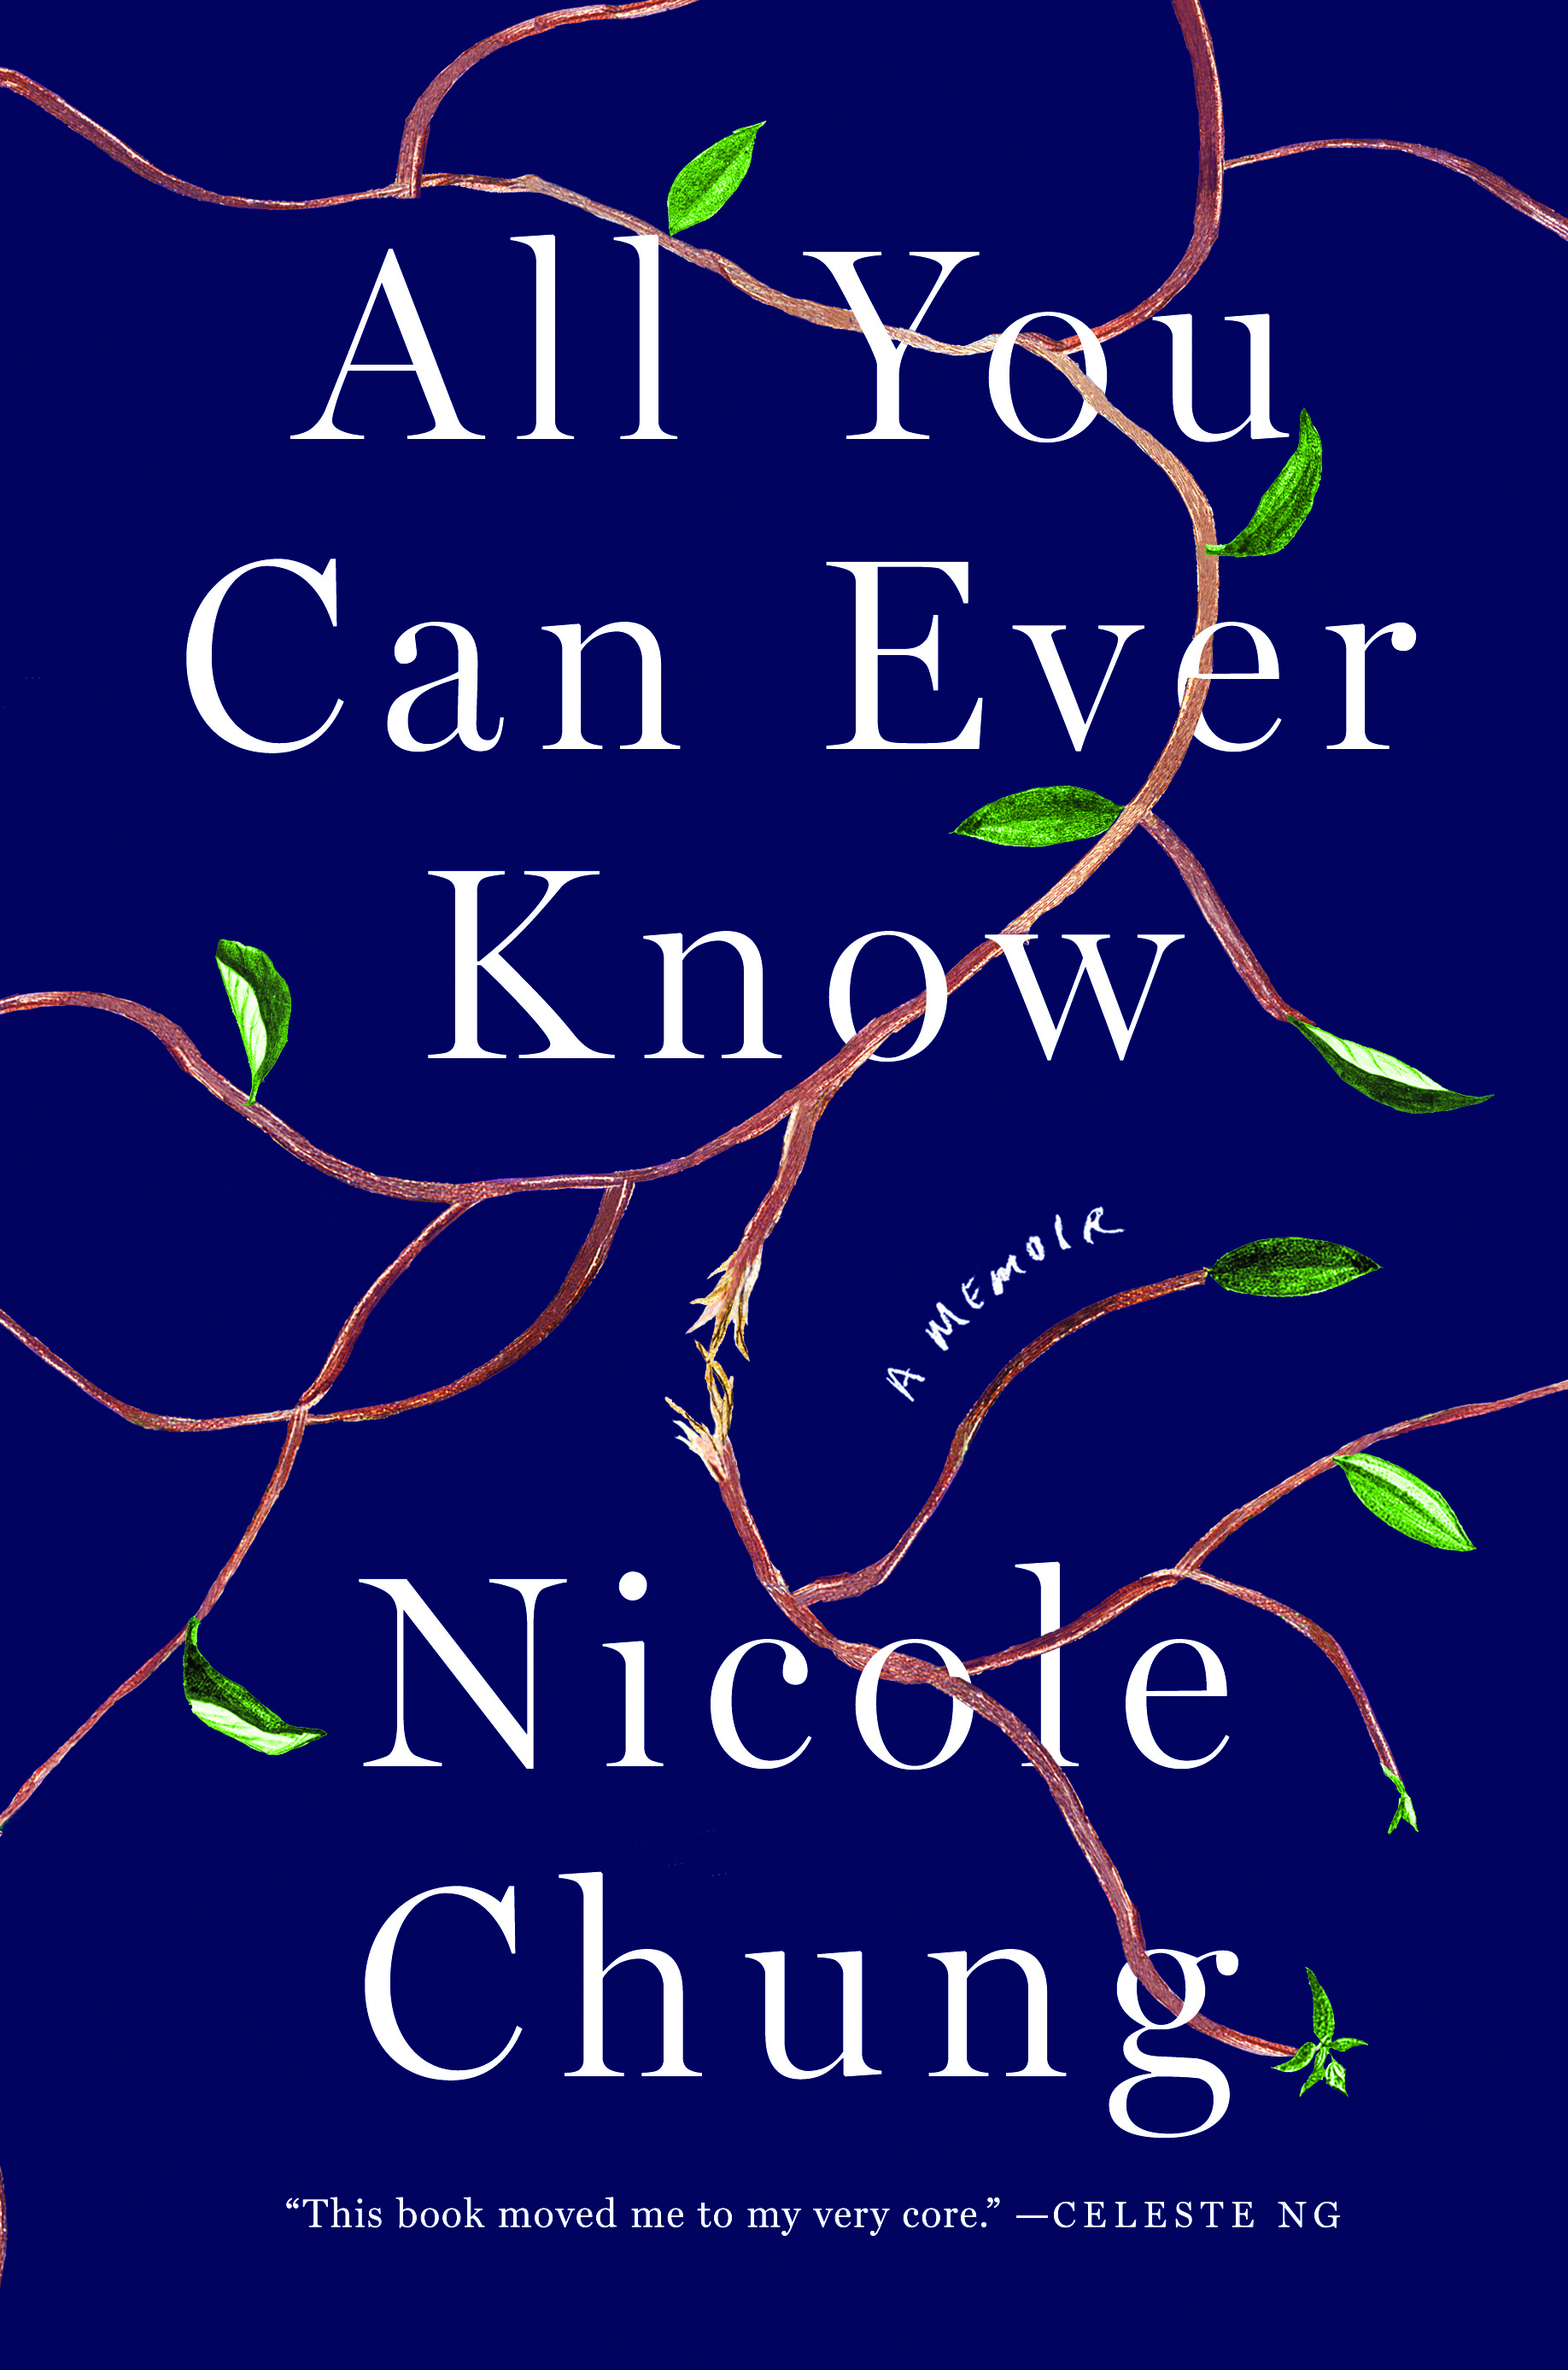 The cover of the book All You Can Ever Know